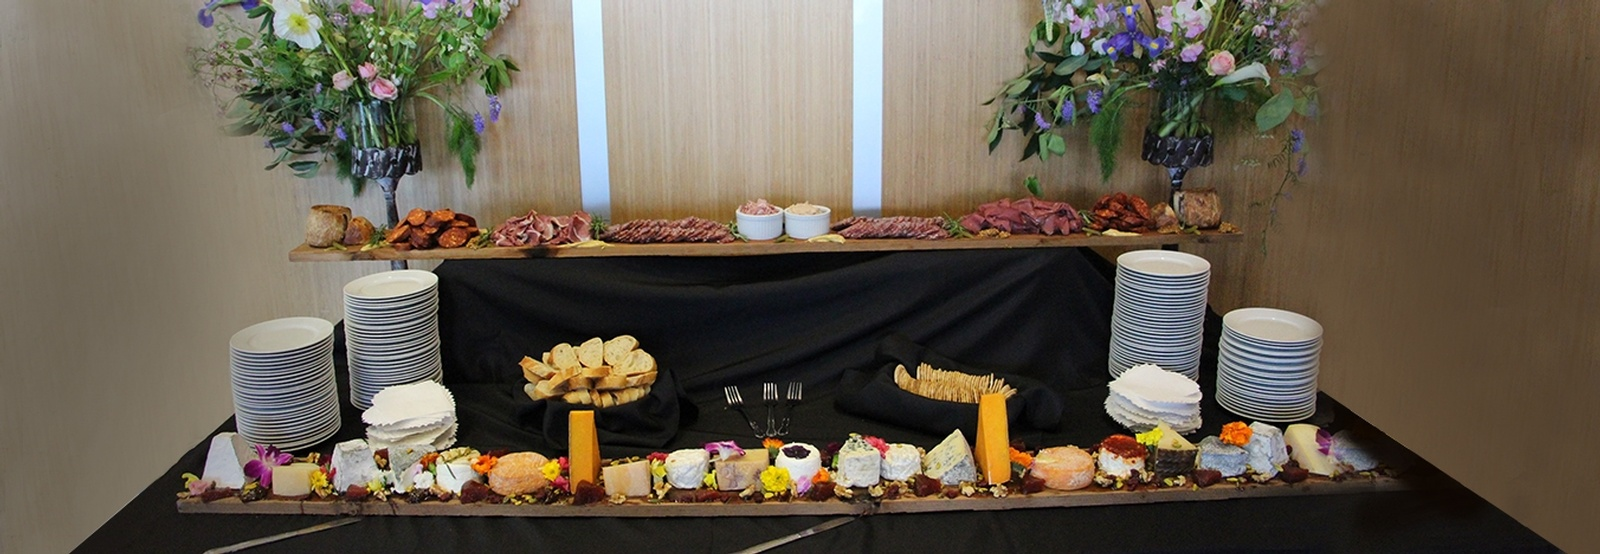 catering services Vancouver,BC